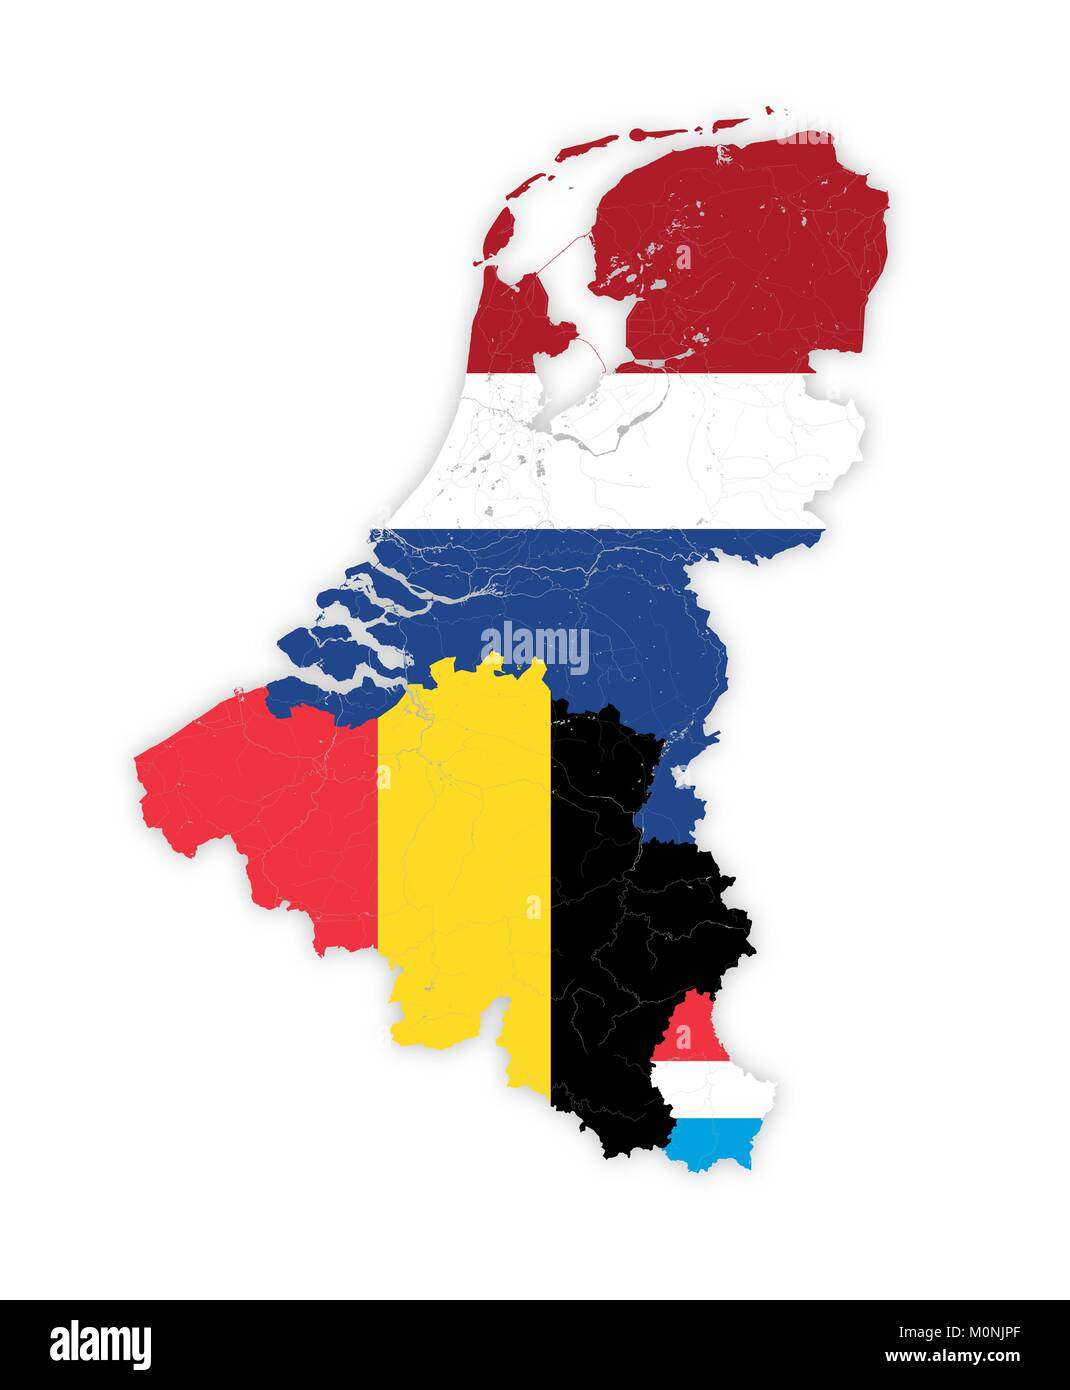 Map of BeNeLux countries with rivers and lakes in colors of the national flags. Map consists of separate maps of - Stock Image